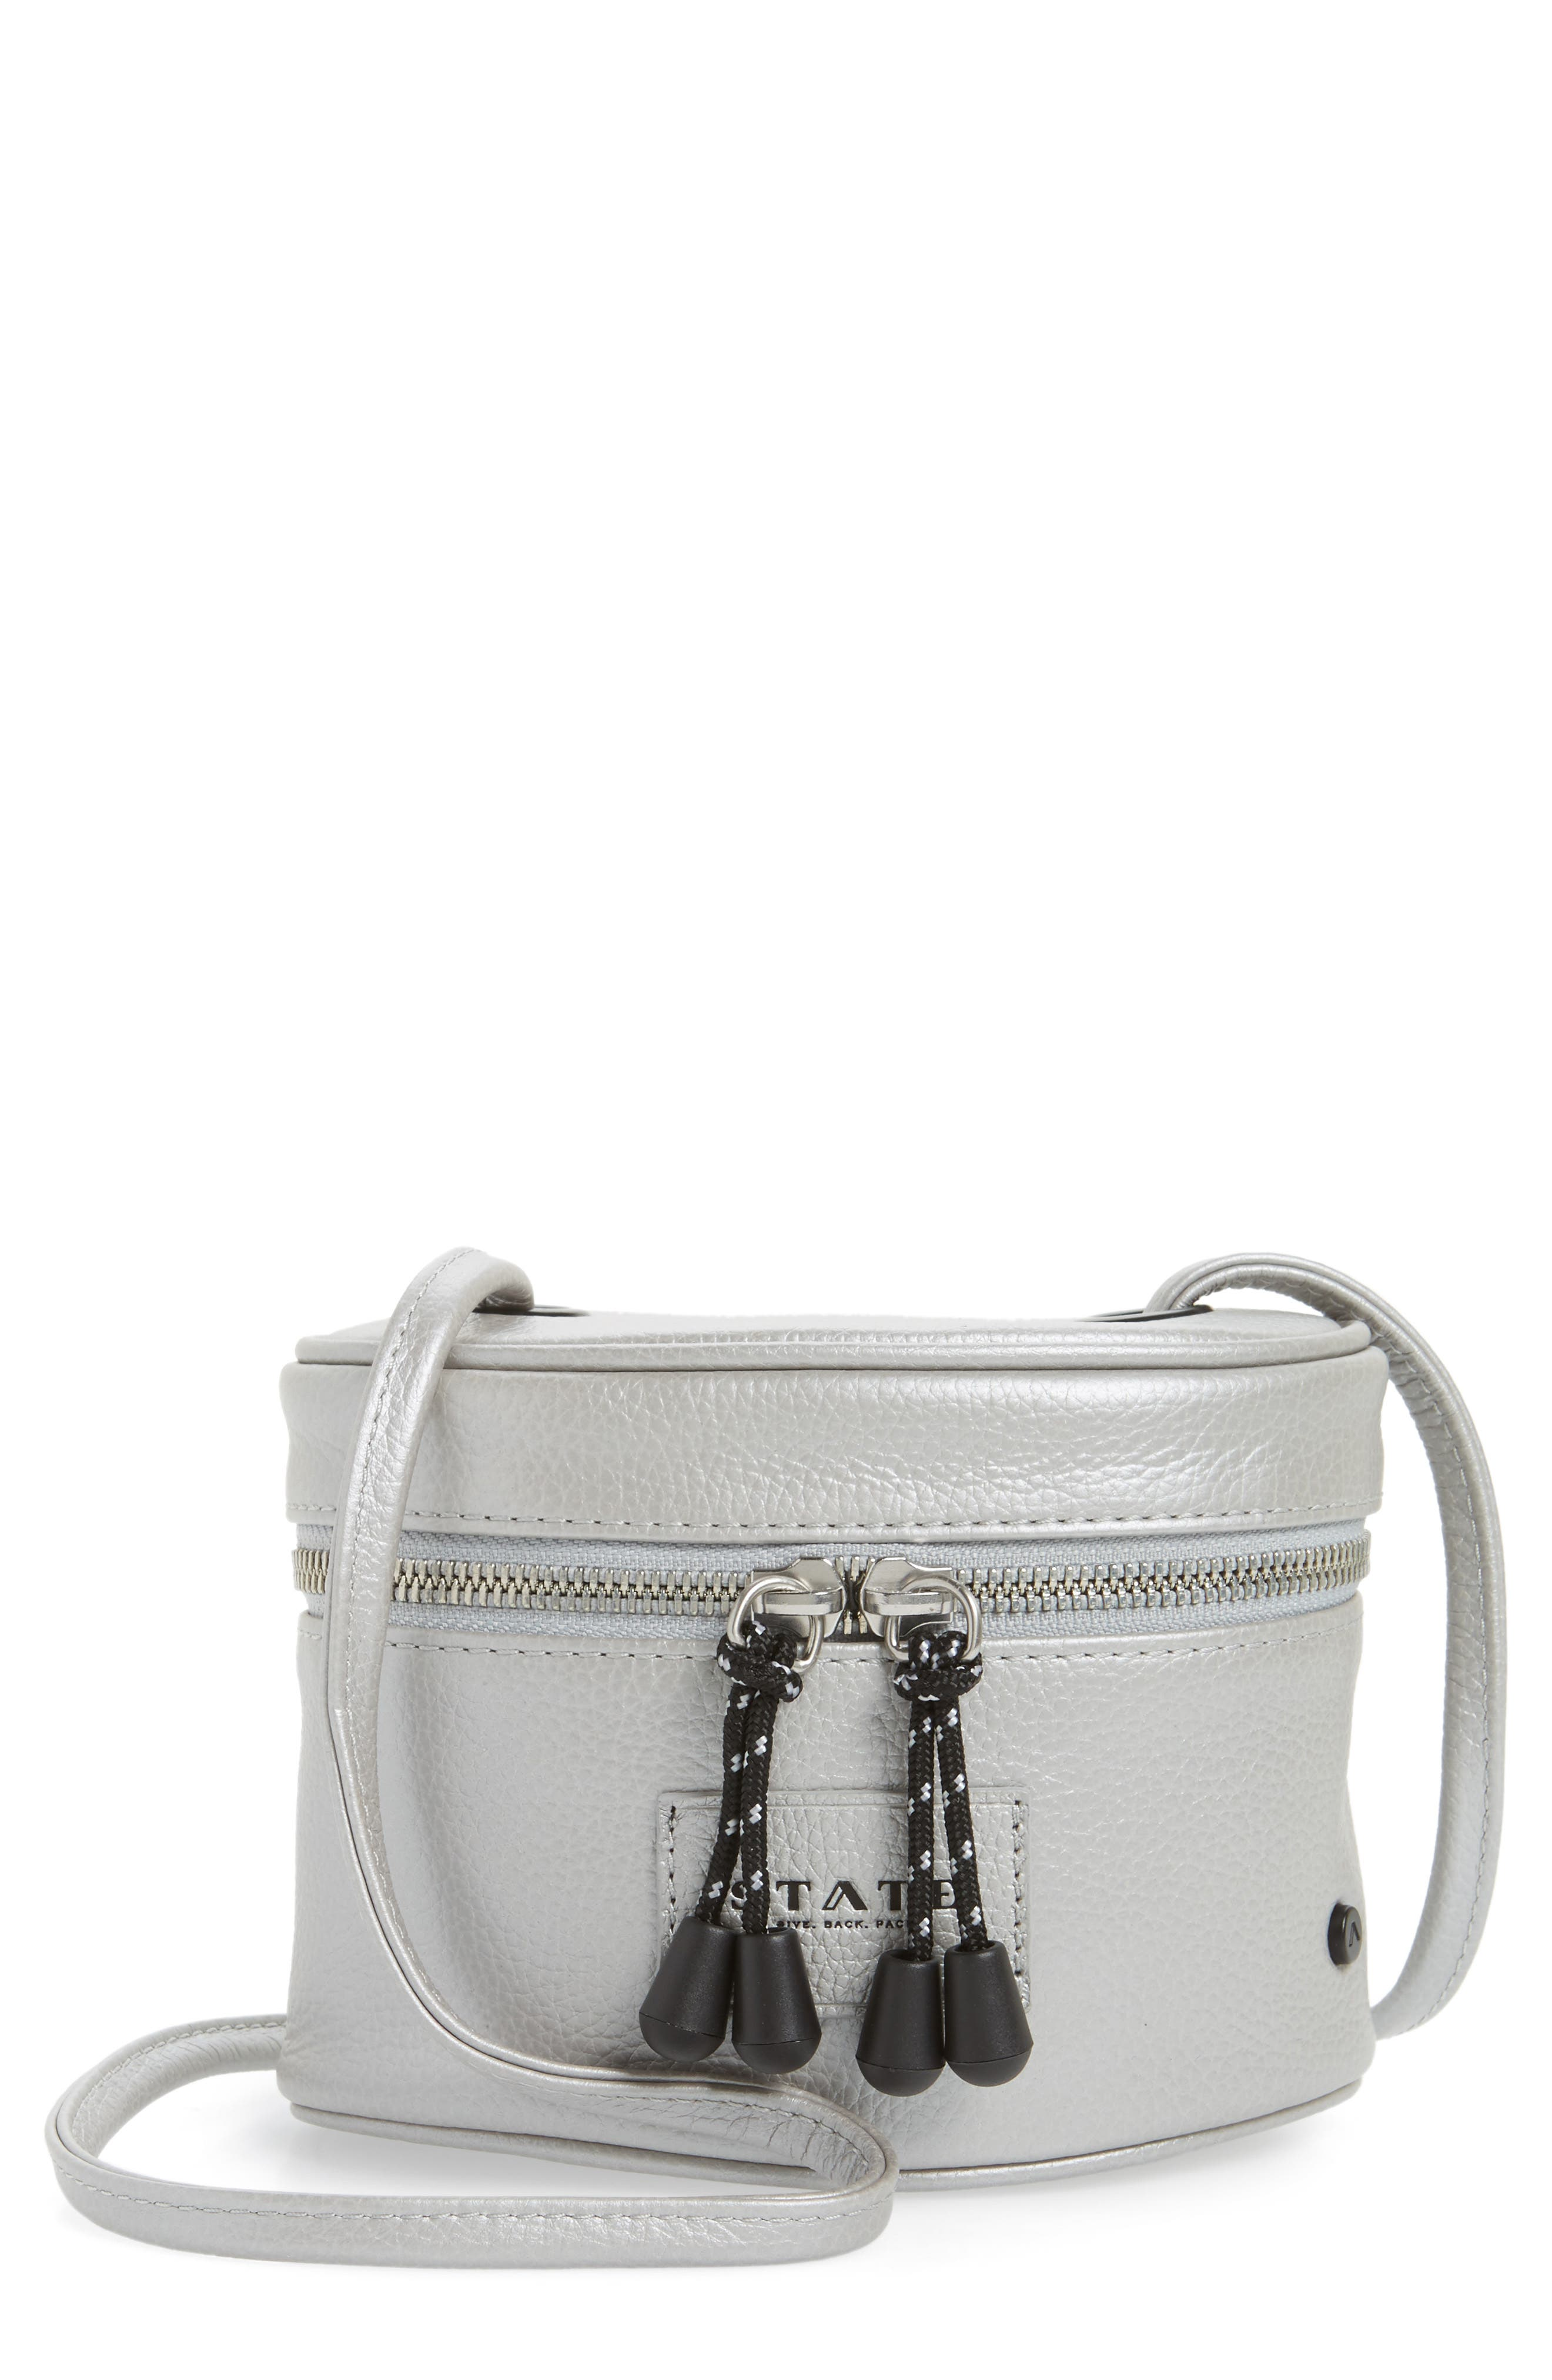 Greenwood Autumn Leather Crossbody Bag,                         Main,                         color,